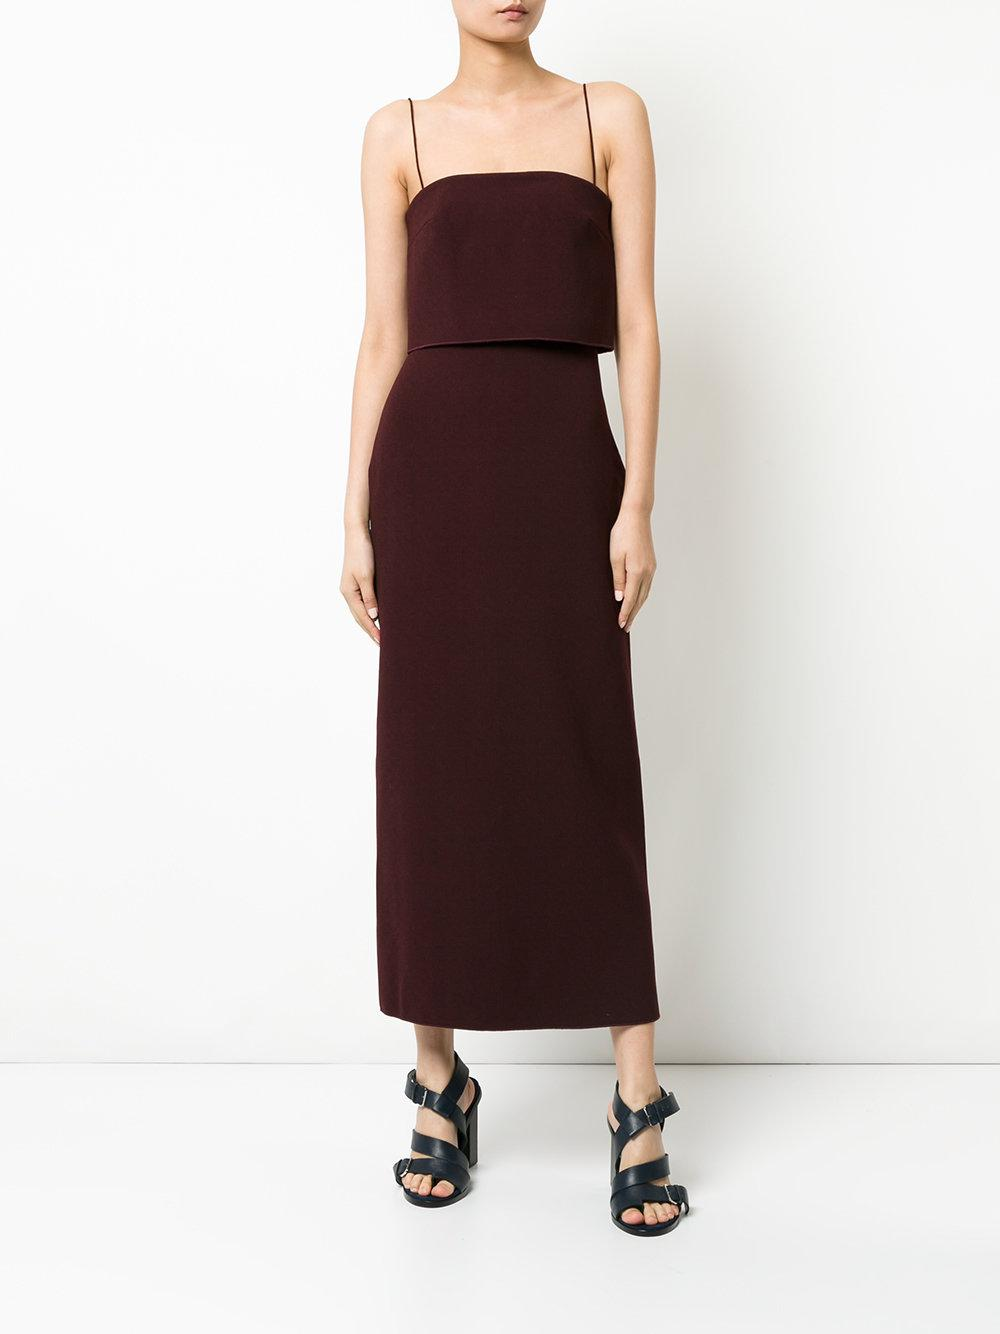 b426ca2ed0a2 Dion Lee Column Dress in Red - Lyst